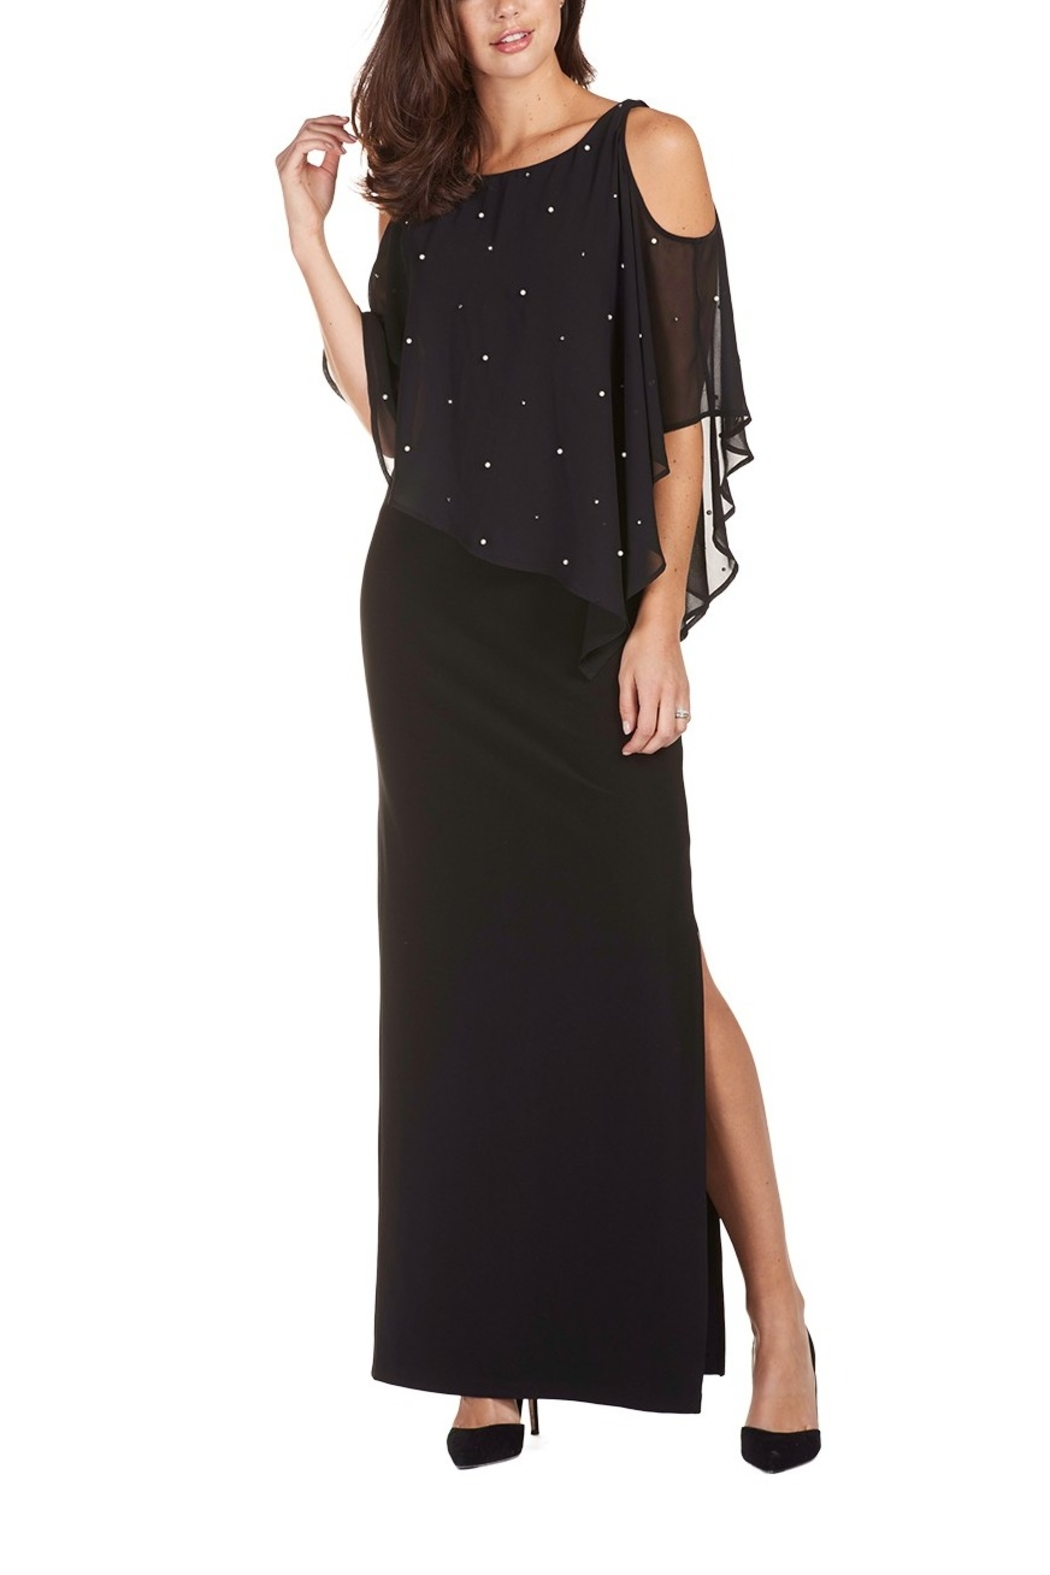 Frank Lyman Cold Shoulder Full Length Overlay Gown - Main Image